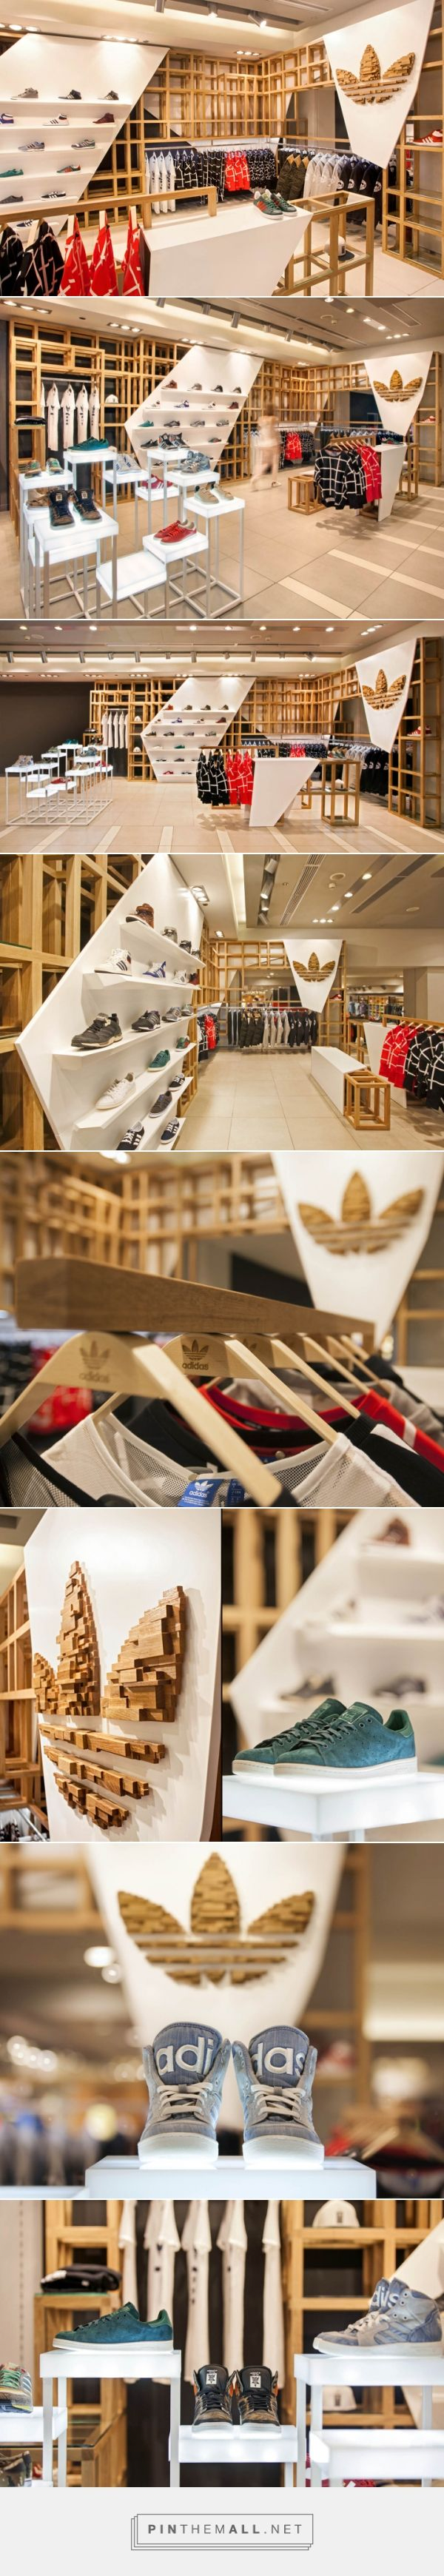 Store by riis retail aarhus denmark 187 retail design blog - Adidas Originals Fashion Store By Onoma Architects Athens Greece Retail Design Blog